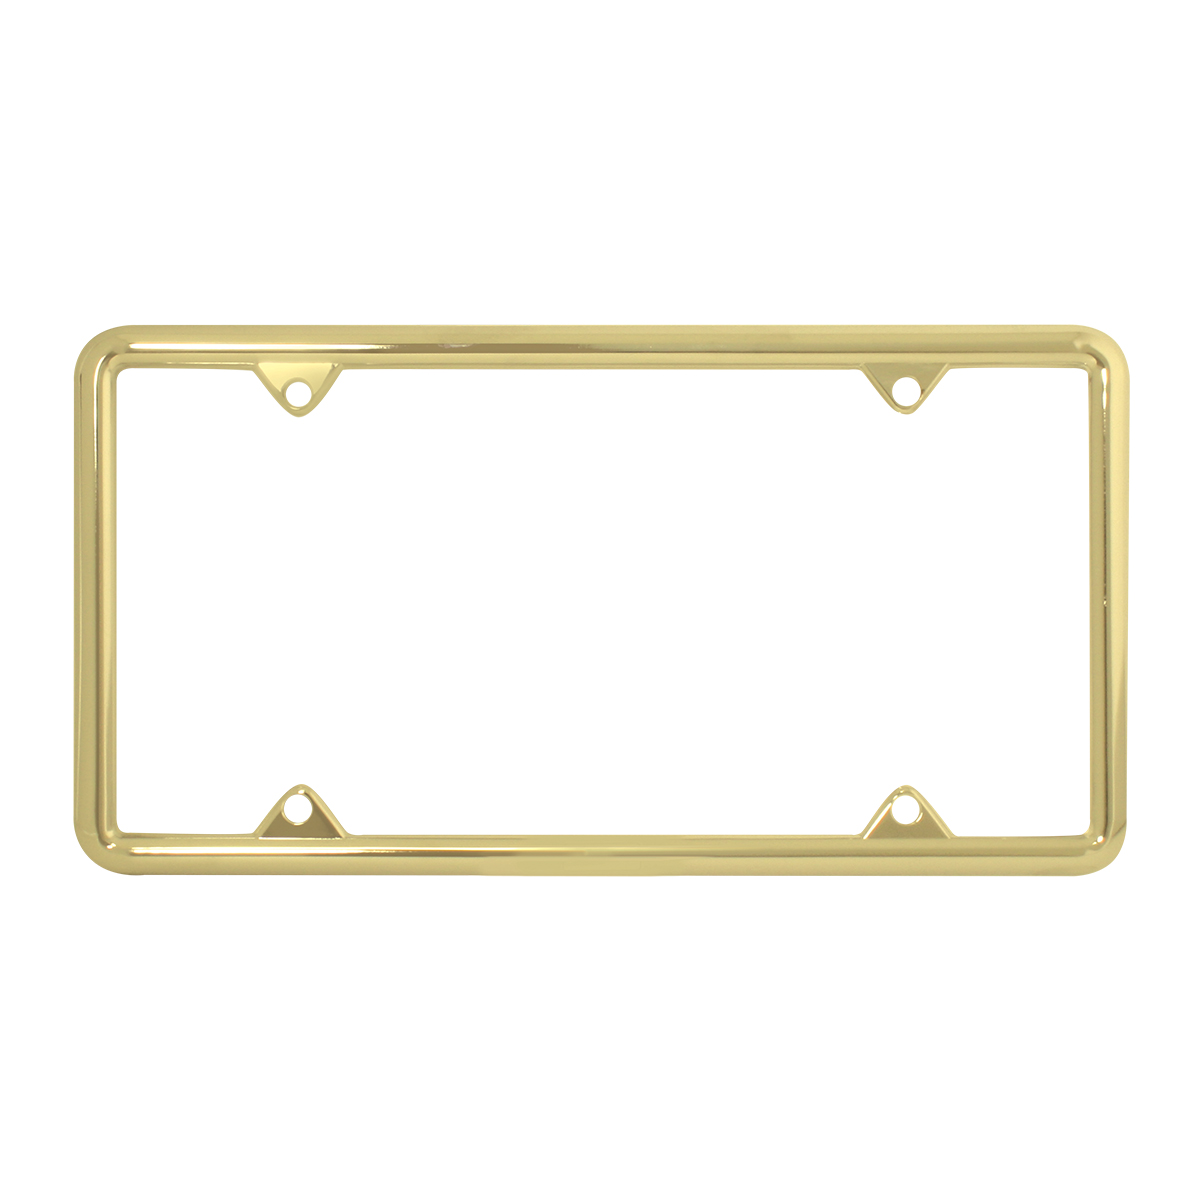 60062 Economic Brass-Plated Zinc Classic 4-Hole License Plate Frames